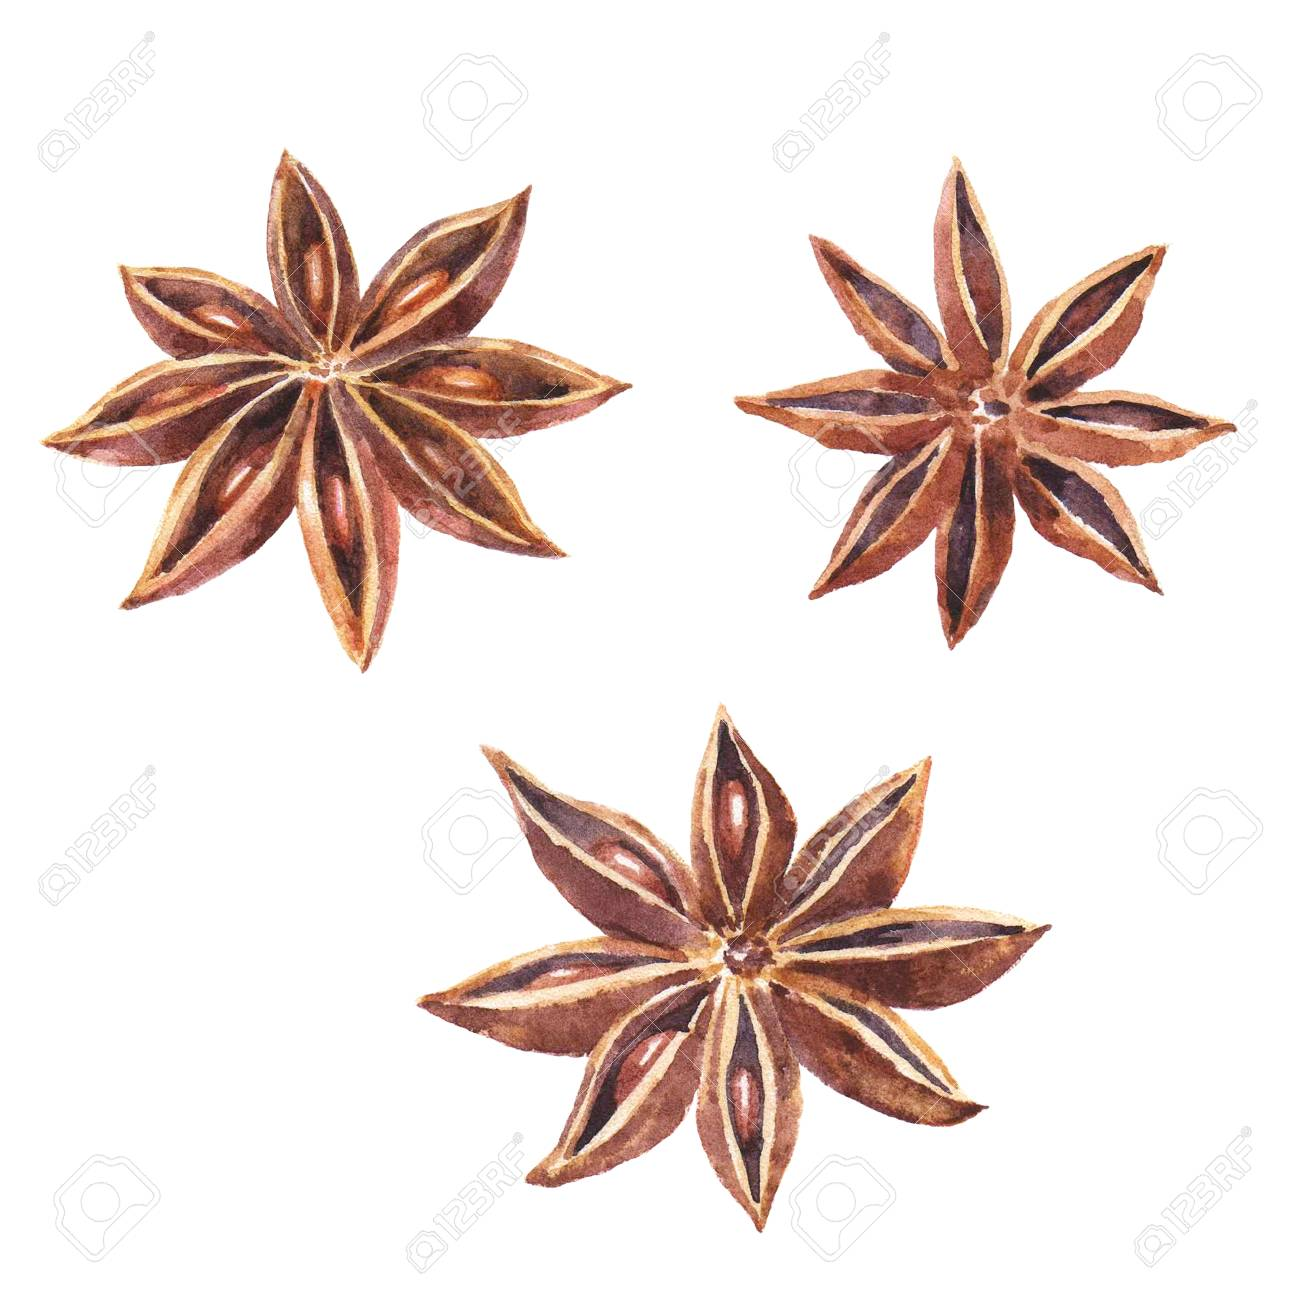 Watercolor set of christmas spice. Anise hand painted illustration on white background - 67669965